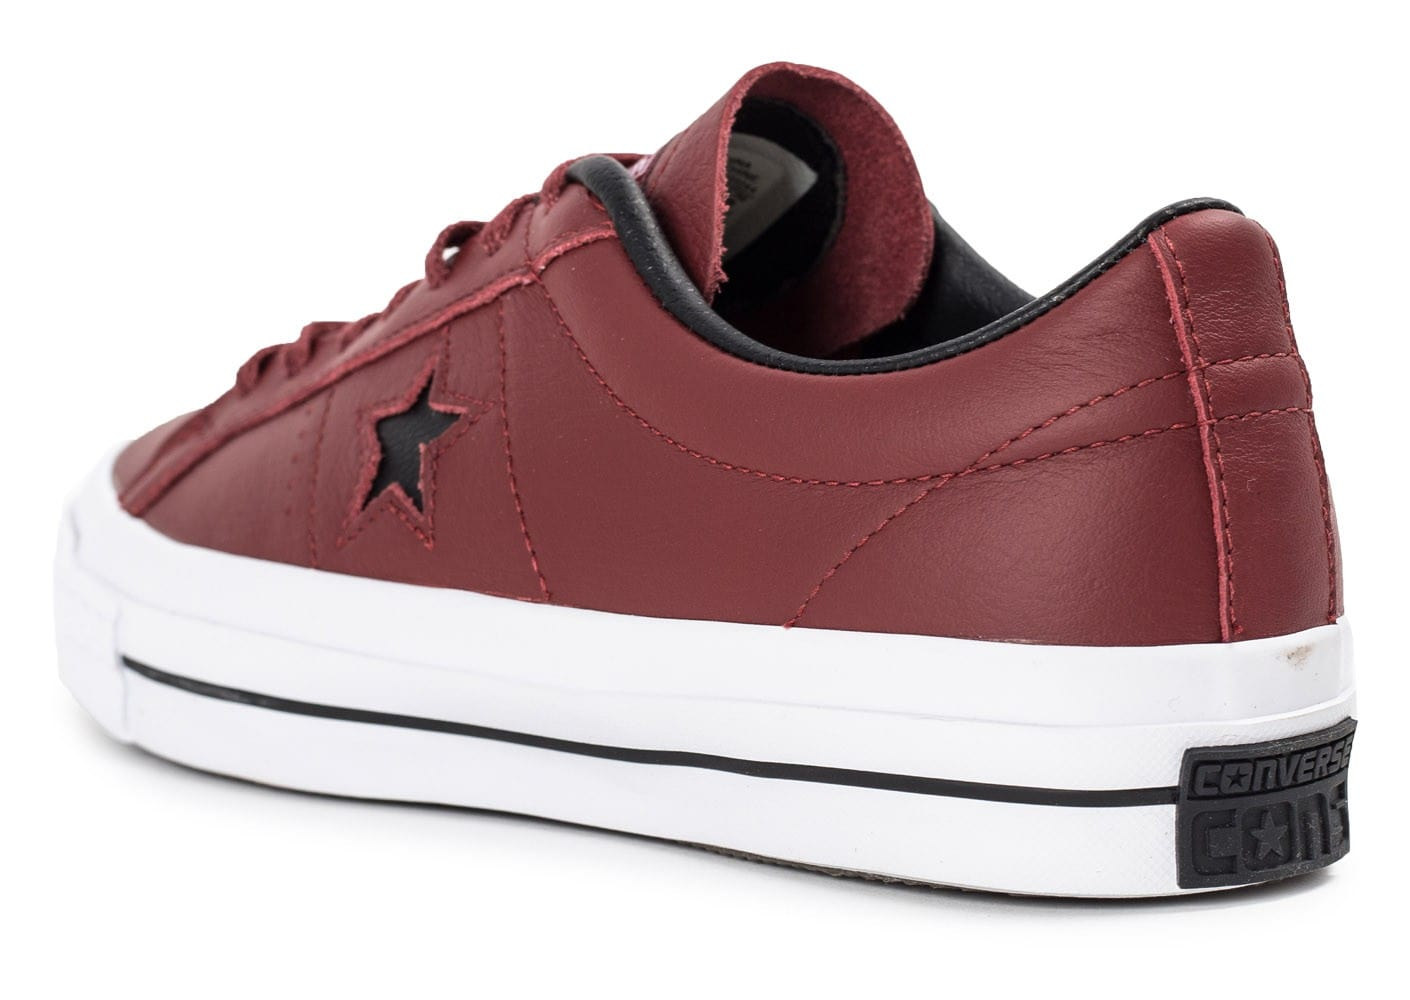 converse one star leather bordeaux chaussures homme. Black Bedroom Furniture Sets. Home Design Ideas